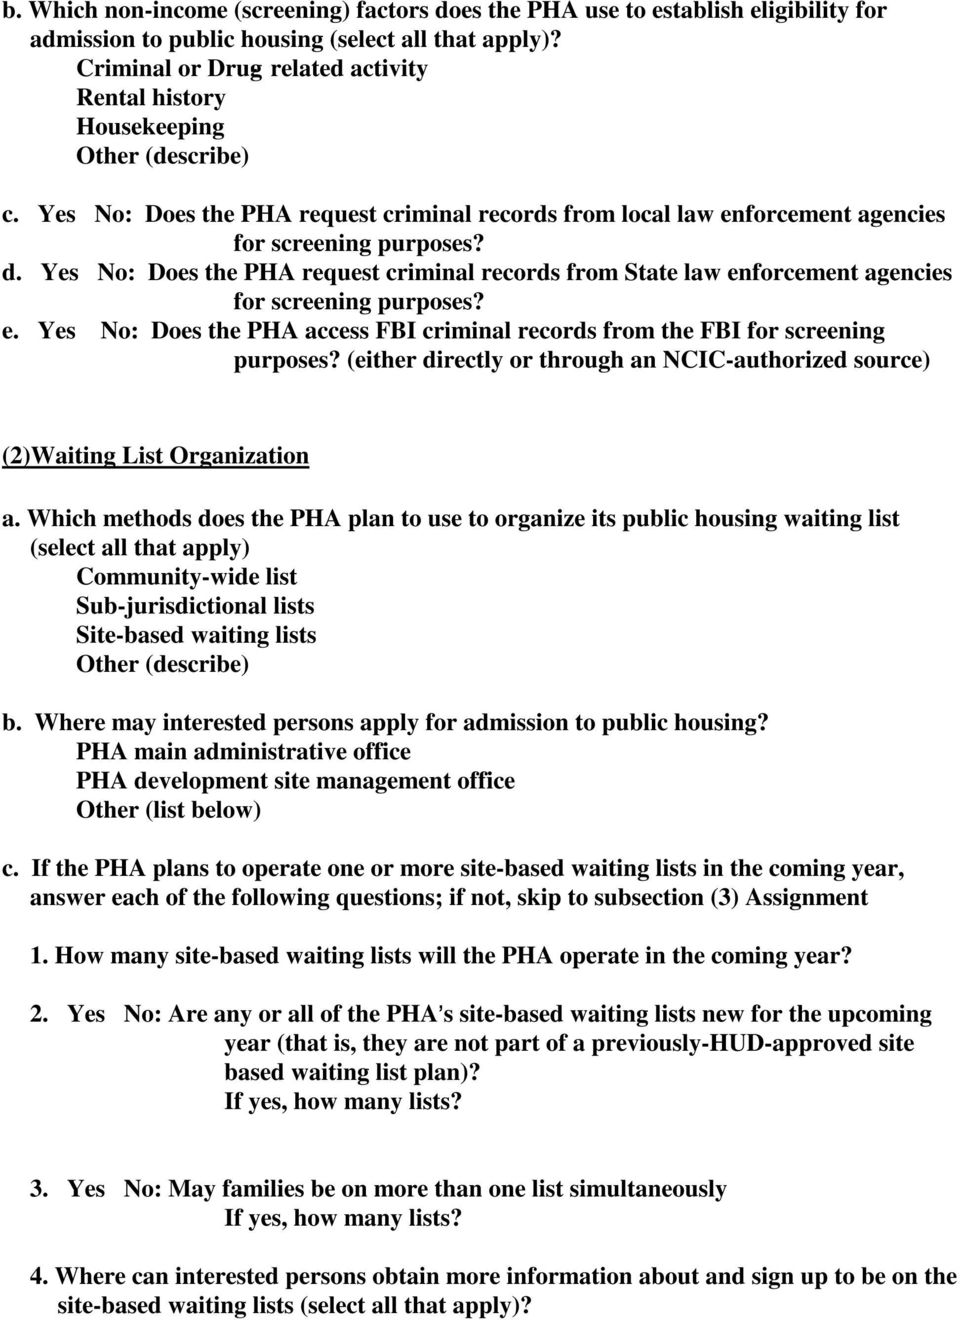 Yes No: Does the PHA request criminal records from State law enforcement agencies for screening purposes? e. Yes No: Does the PHA access FBI criminal records from the FBI for screening purposes?